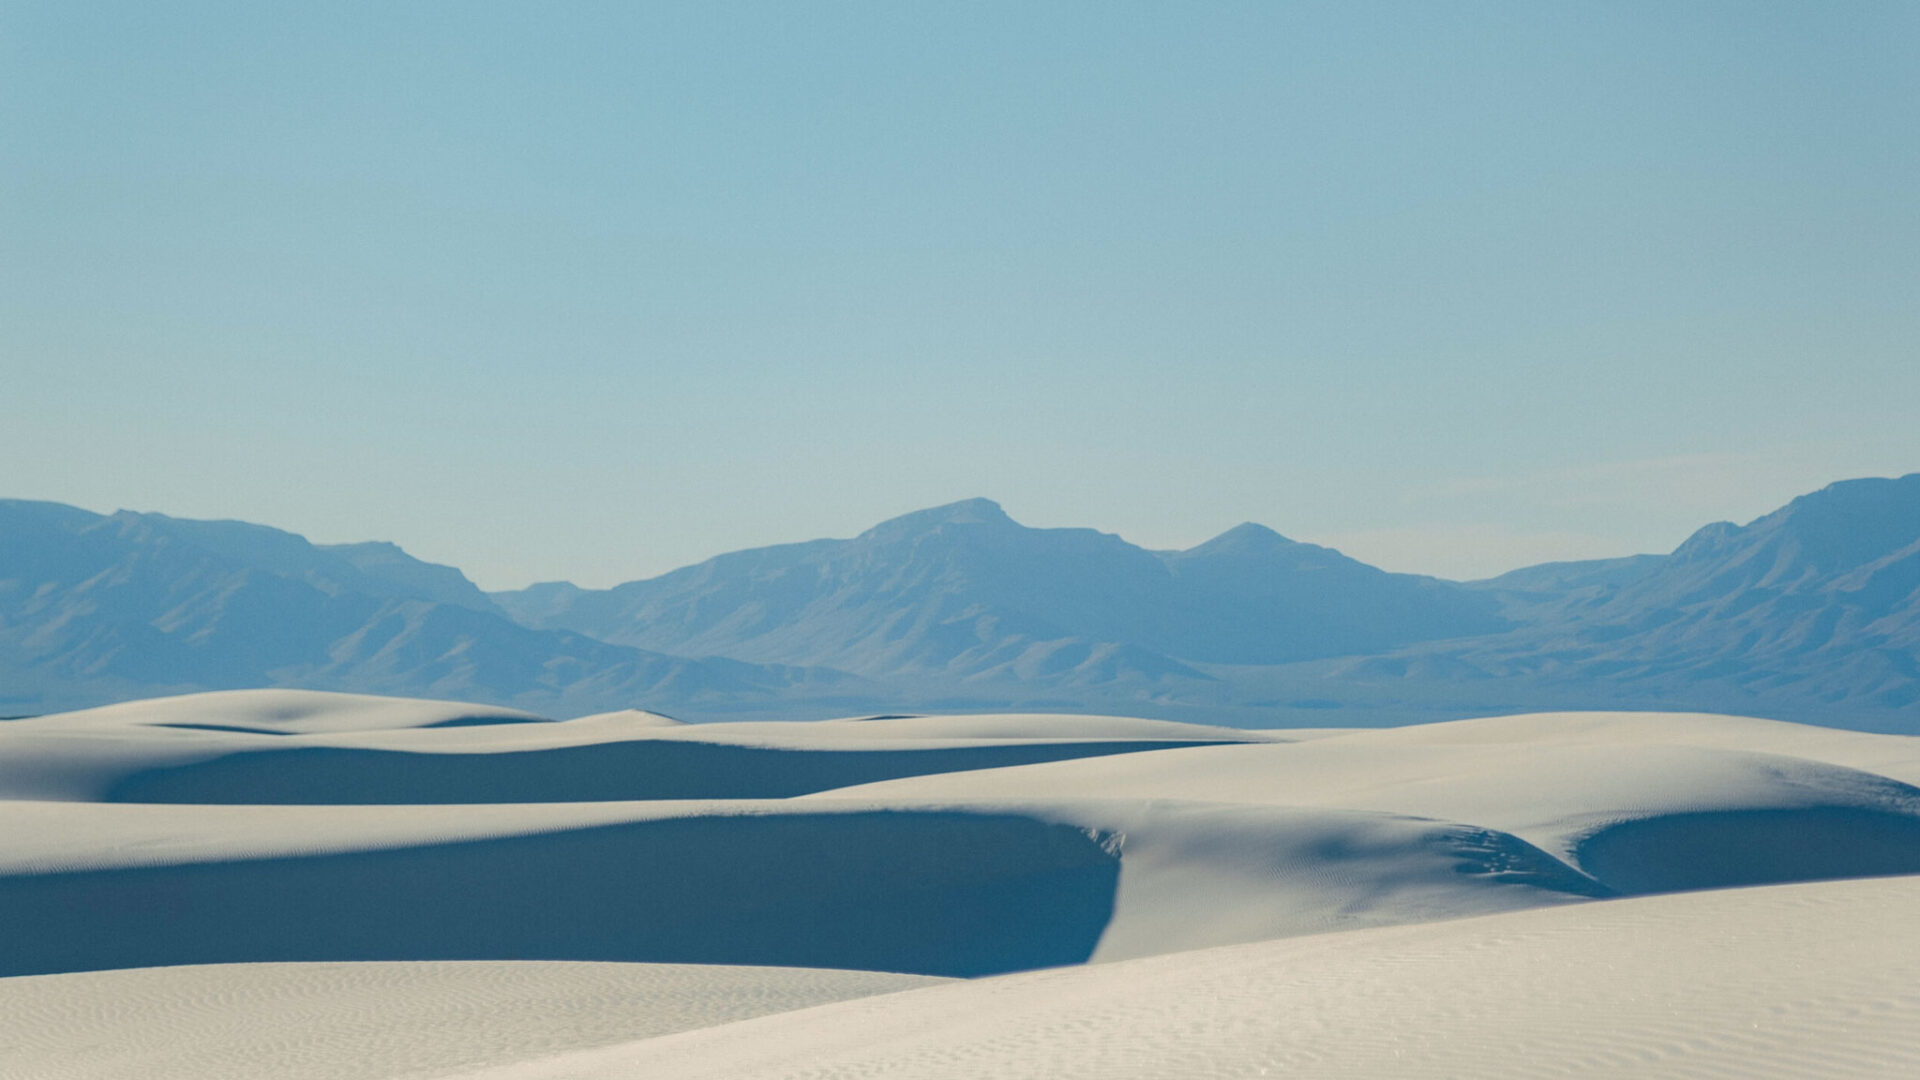 Desert sand with mountains in the background